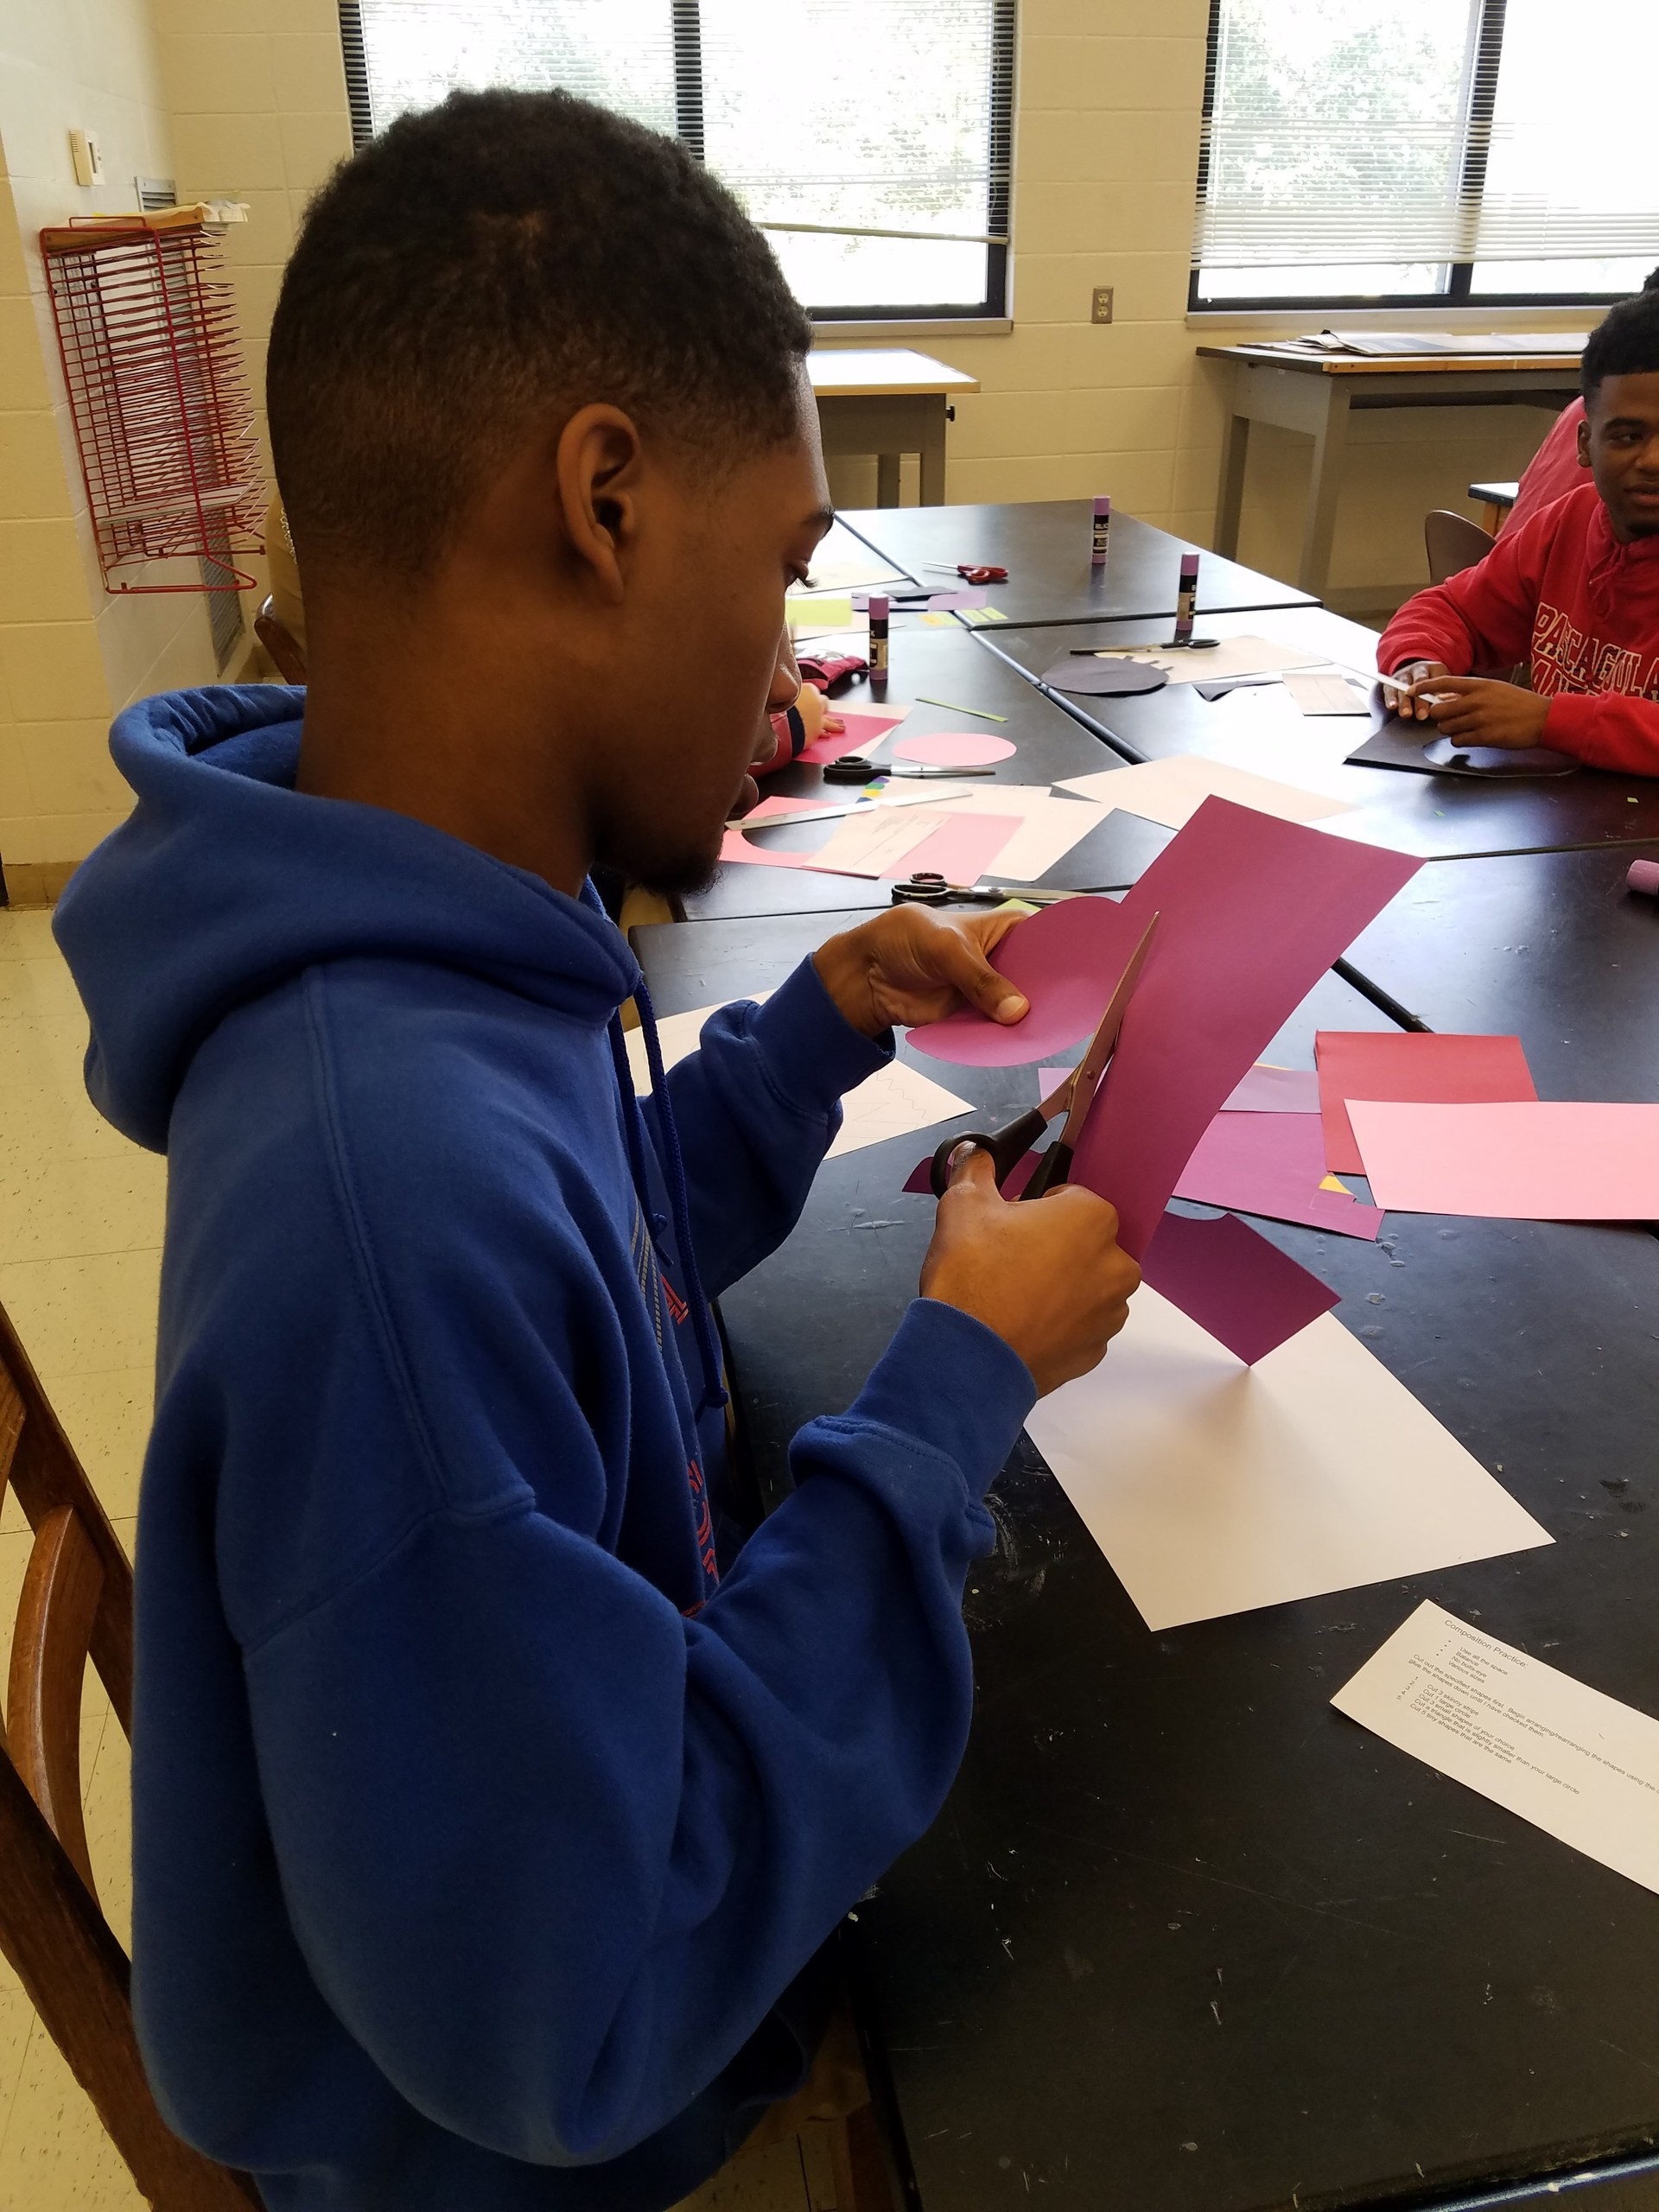 Student cuts shapes out of colored paper